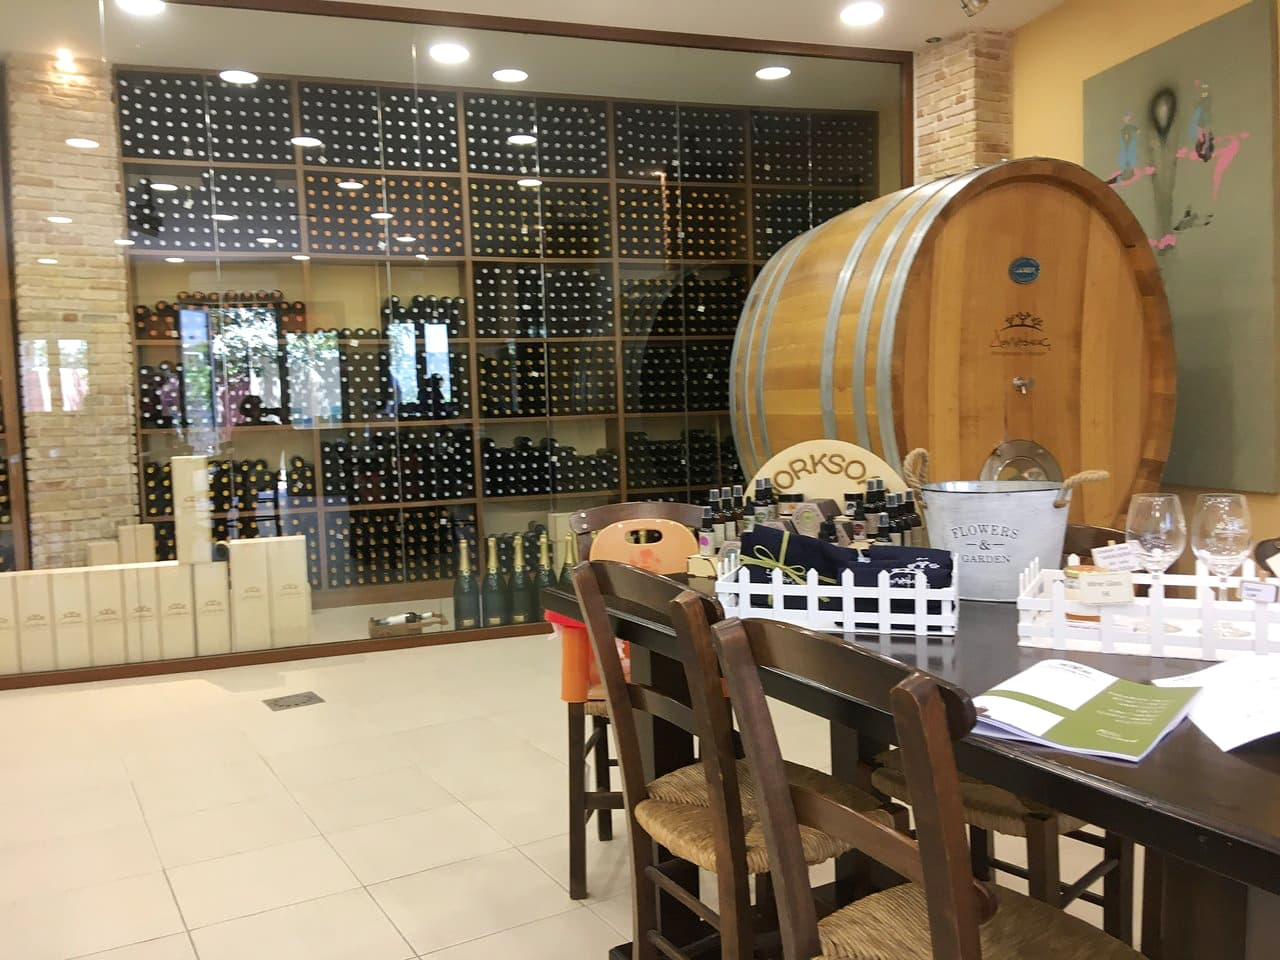 douloufaks winery dafnes heraklion crete, wine tasting heraklion crete, best winery heraklion area, Cretan indigenous varieties, Cretan vineyards, doloufakis winery iraklion crete, activities heraklion crete, things to do nearby heraklion, wineries crete